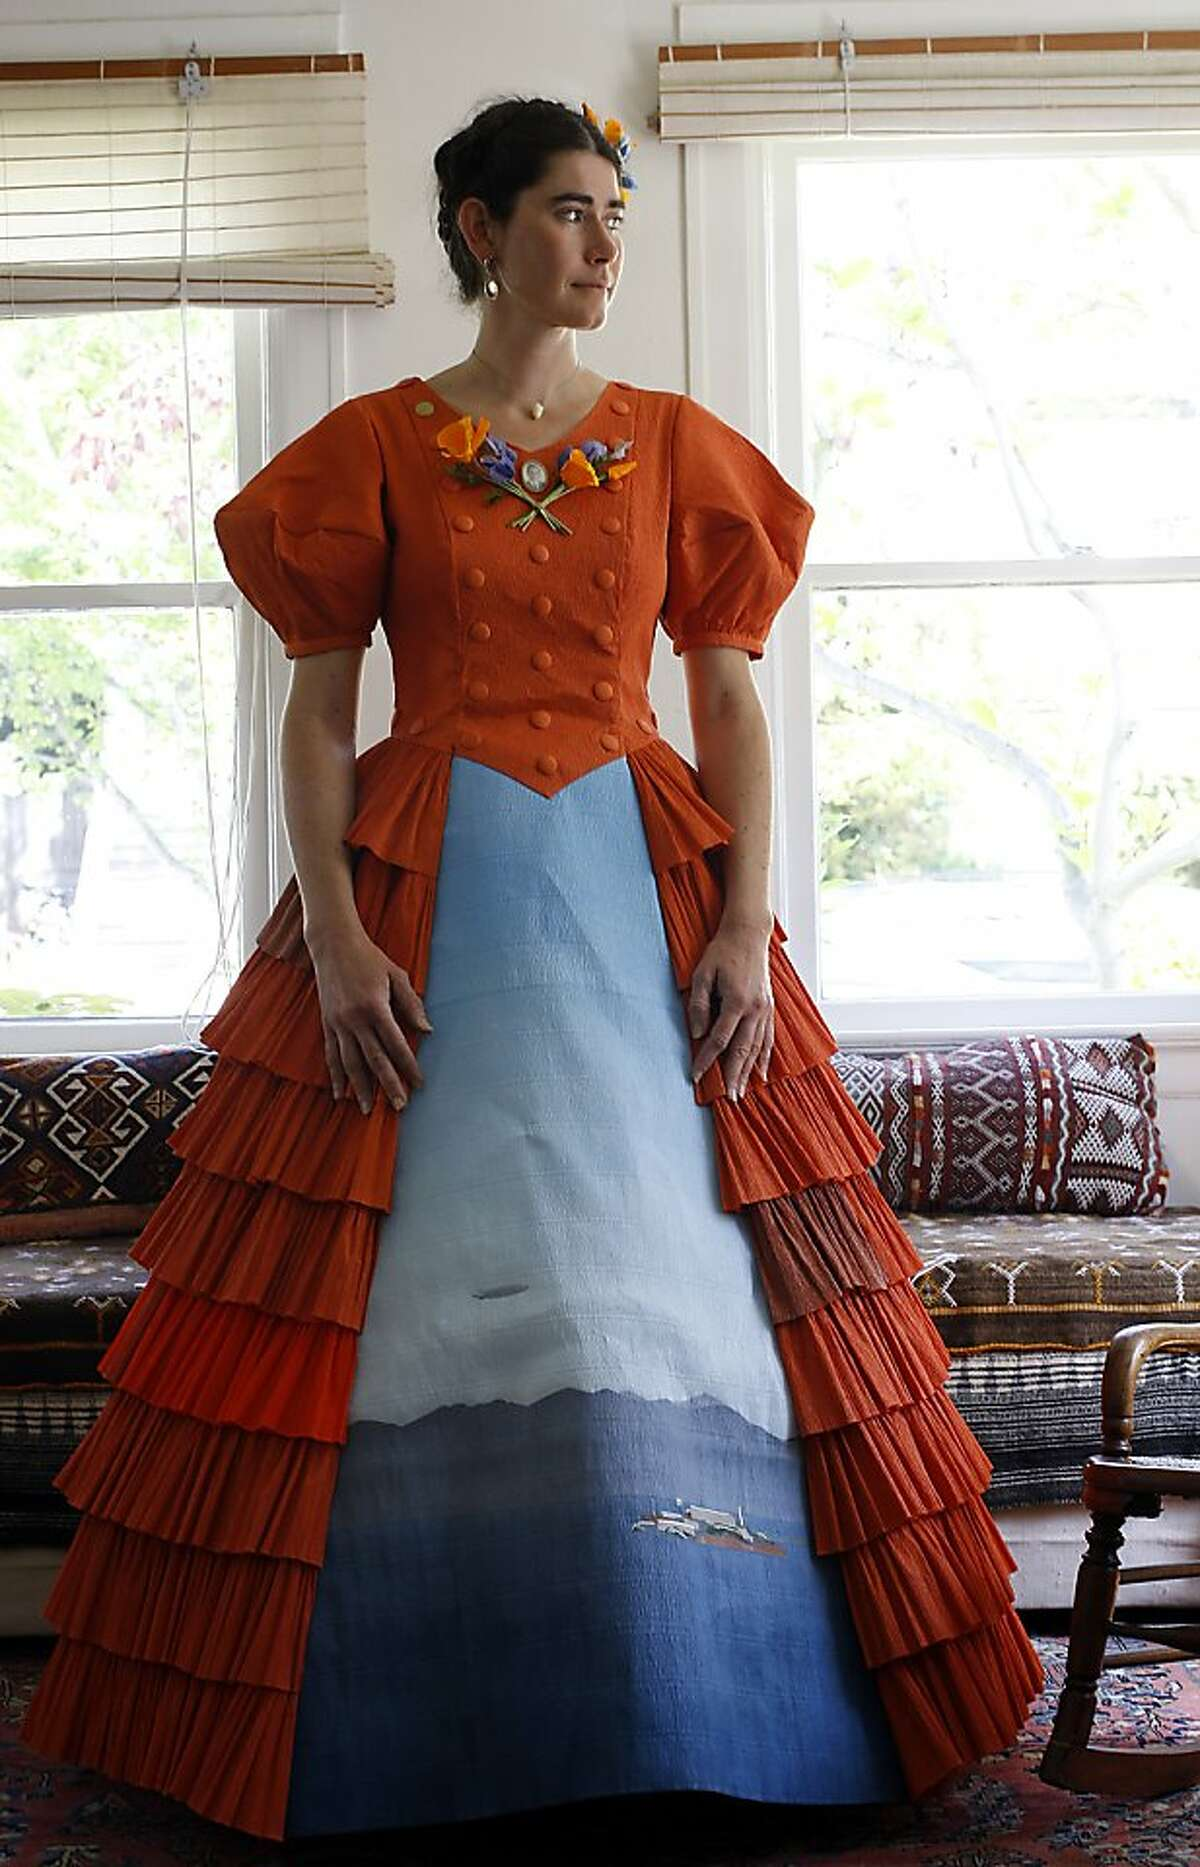 Artist Anandamayi Arnold works on 7 crape paper dresses as one of 17 artists in